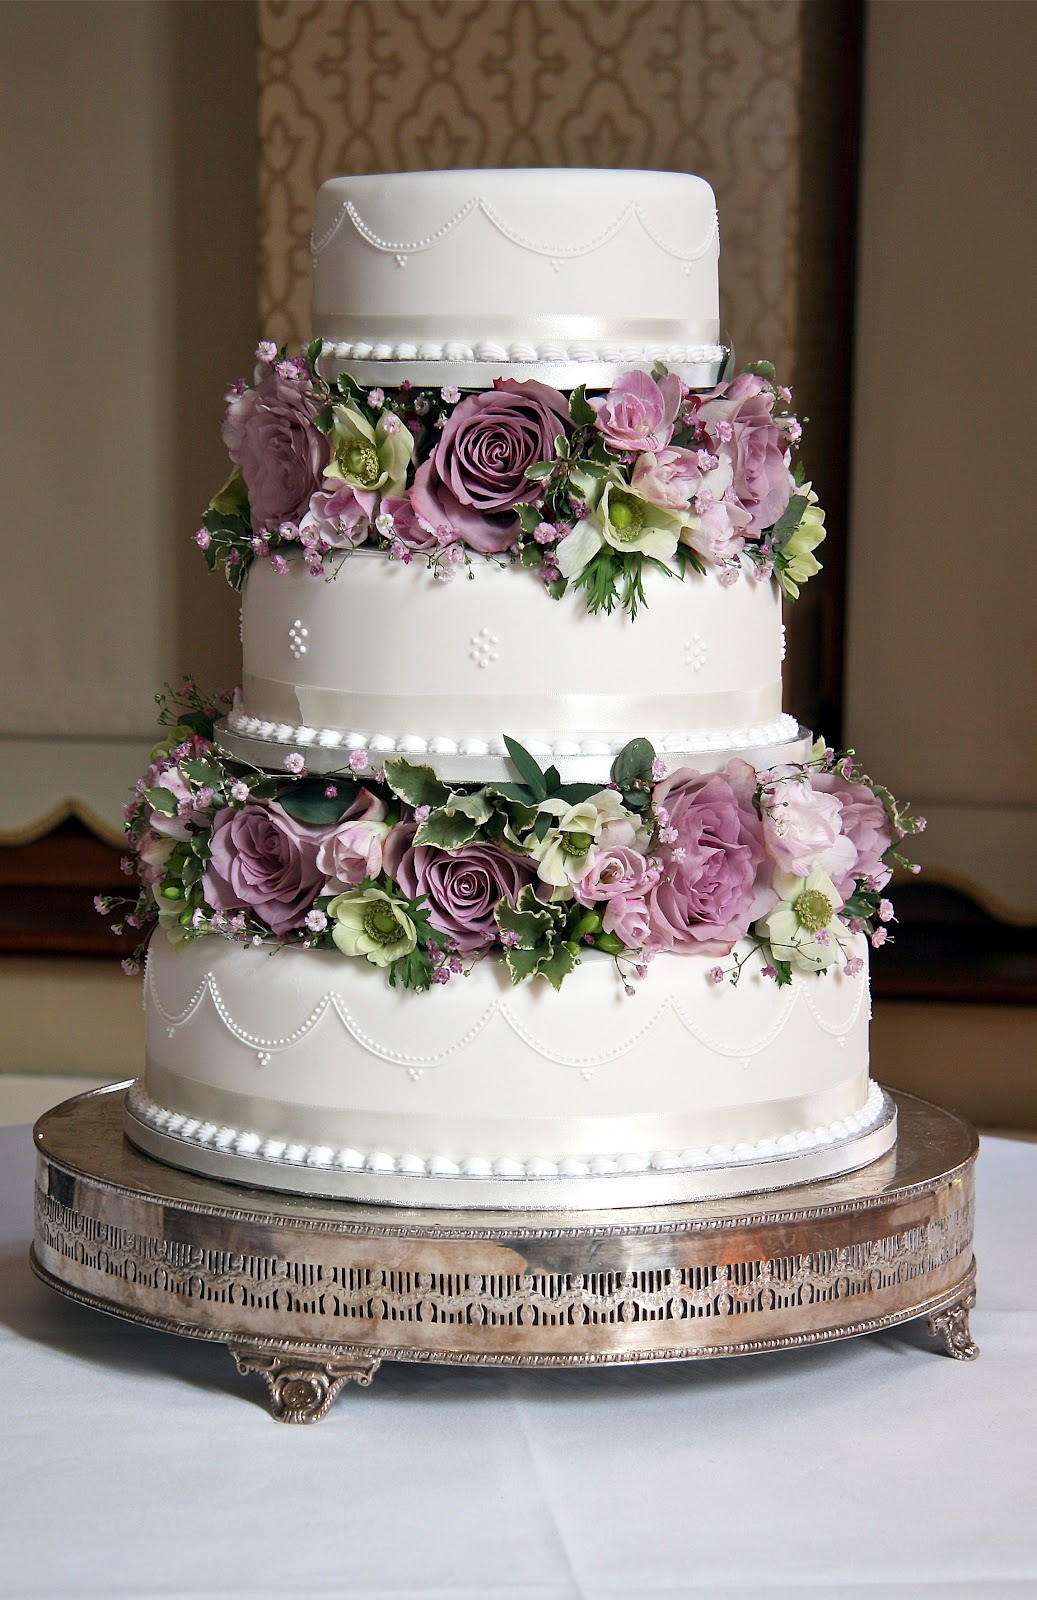 Alfa img Showing Vintage Wedding Cakes with Flowers